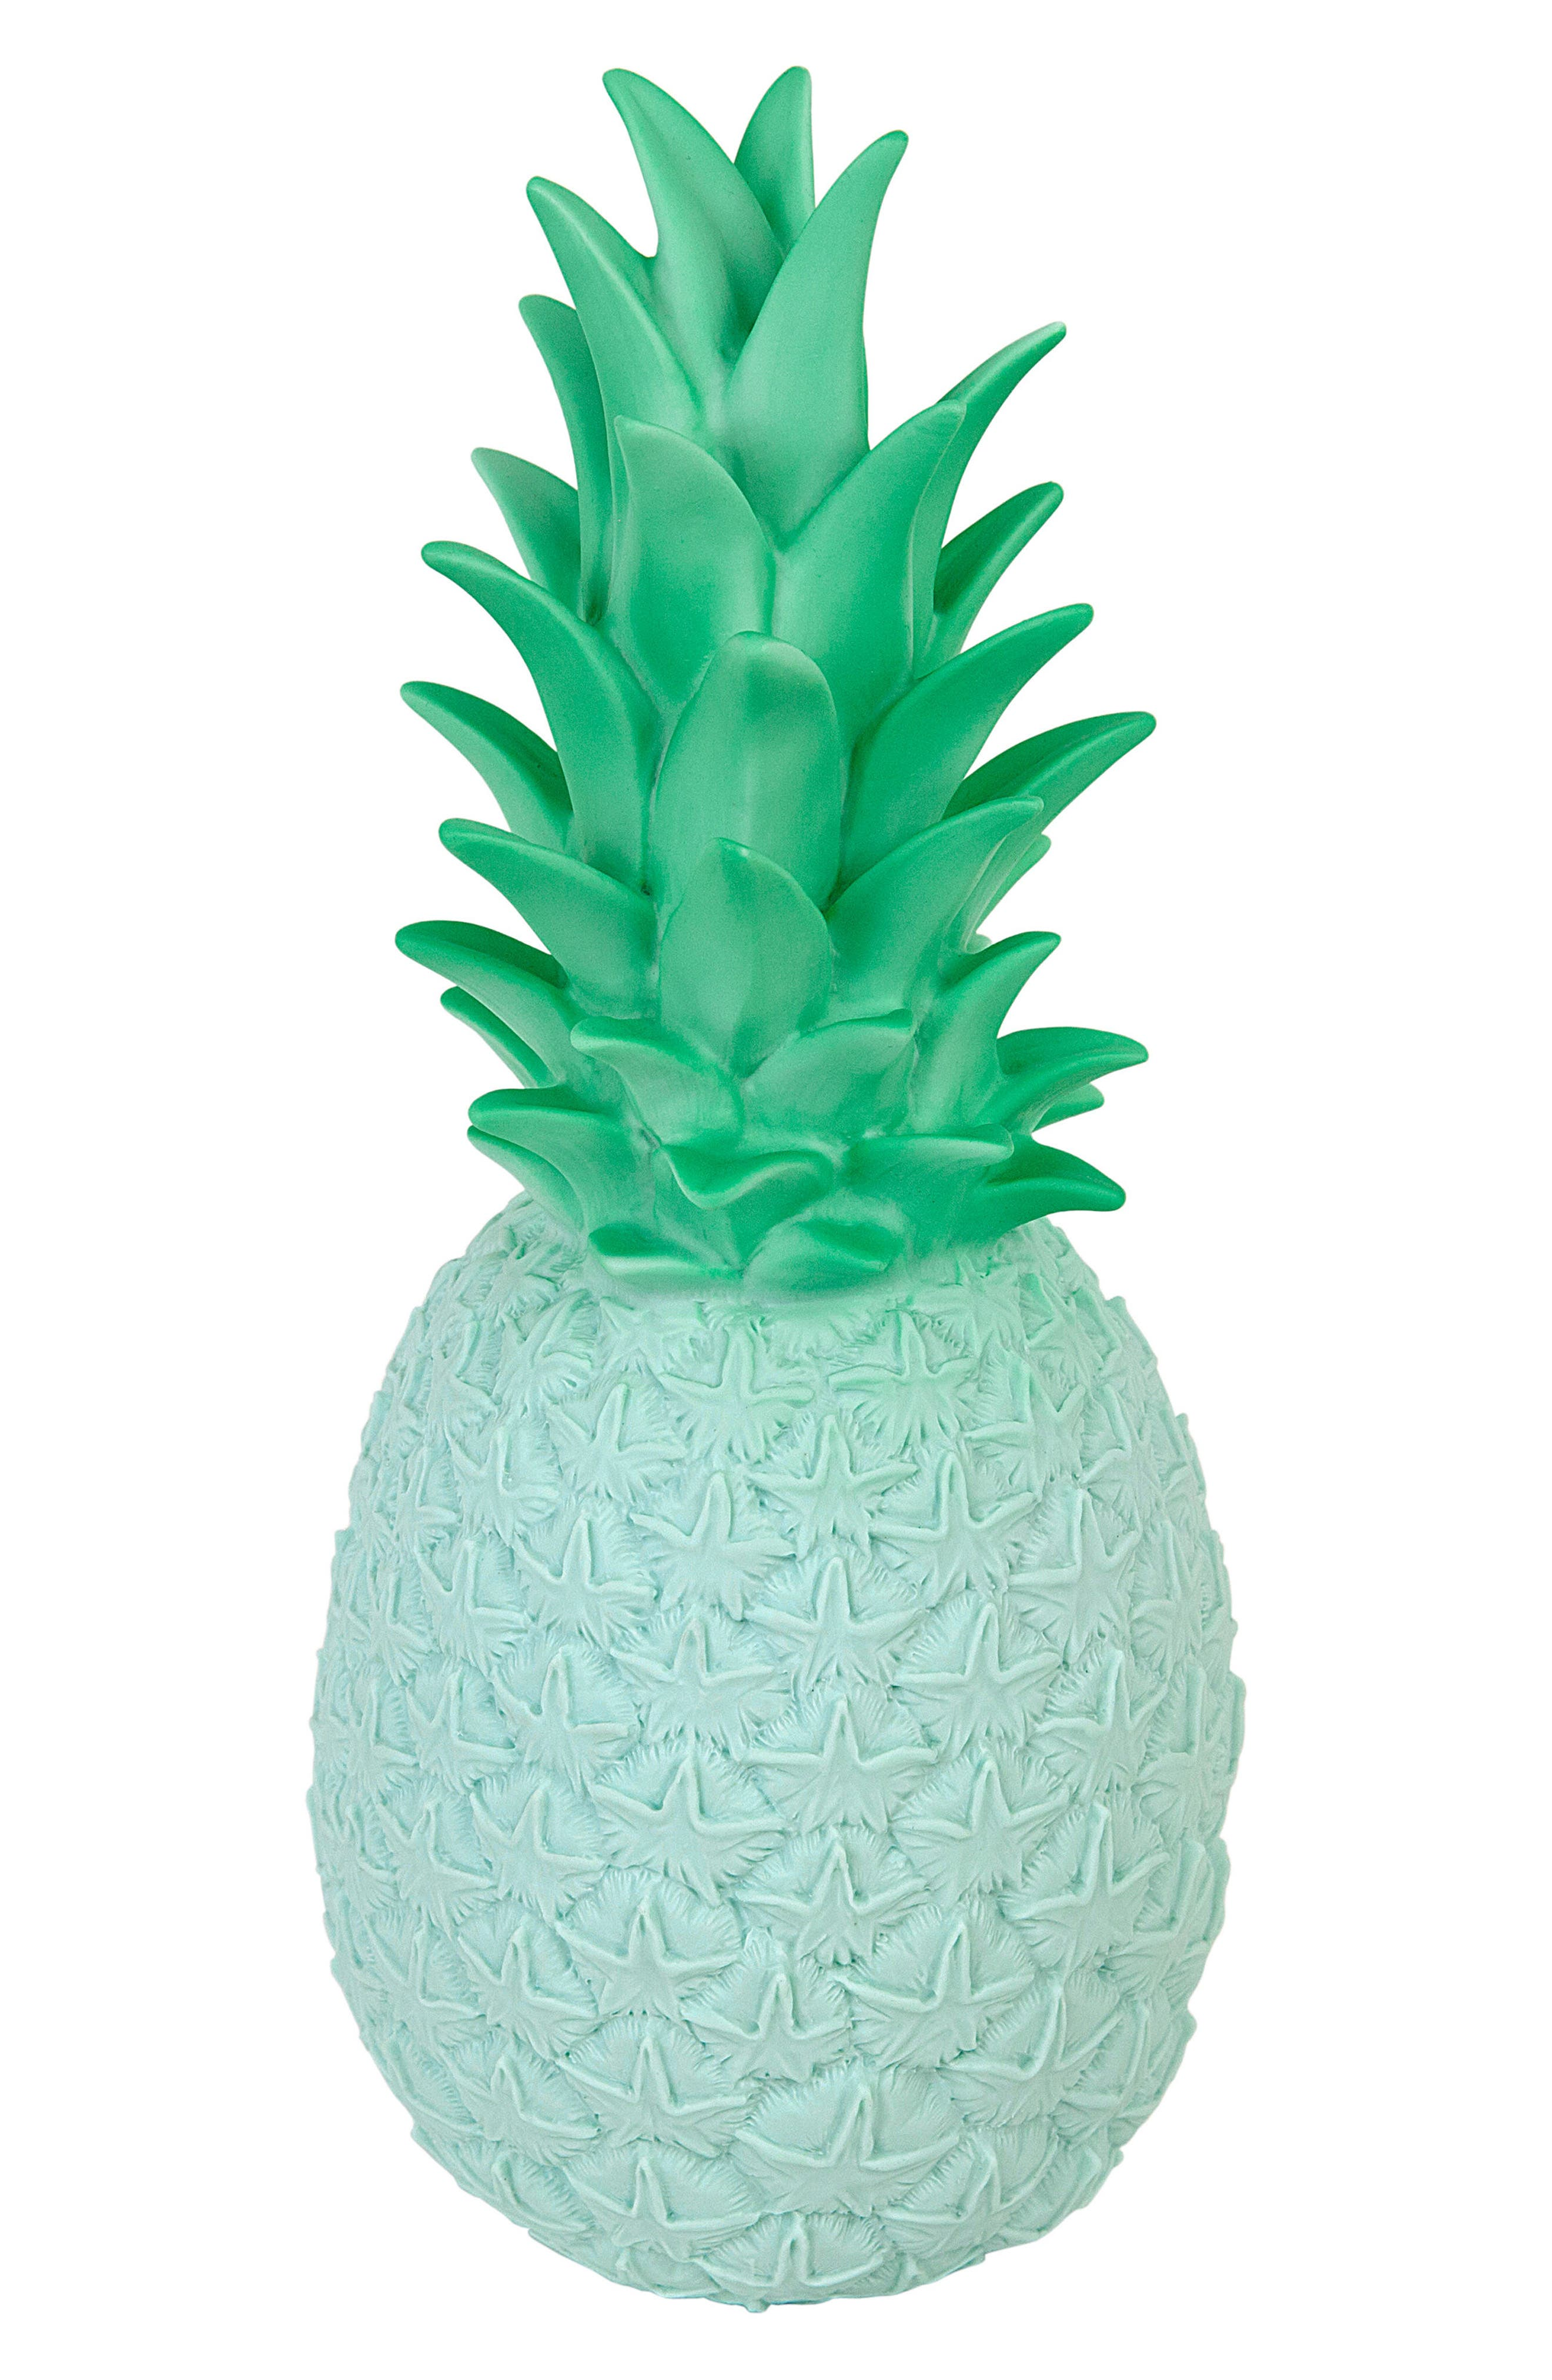 Goodnight Light Pineapple LED Lamp